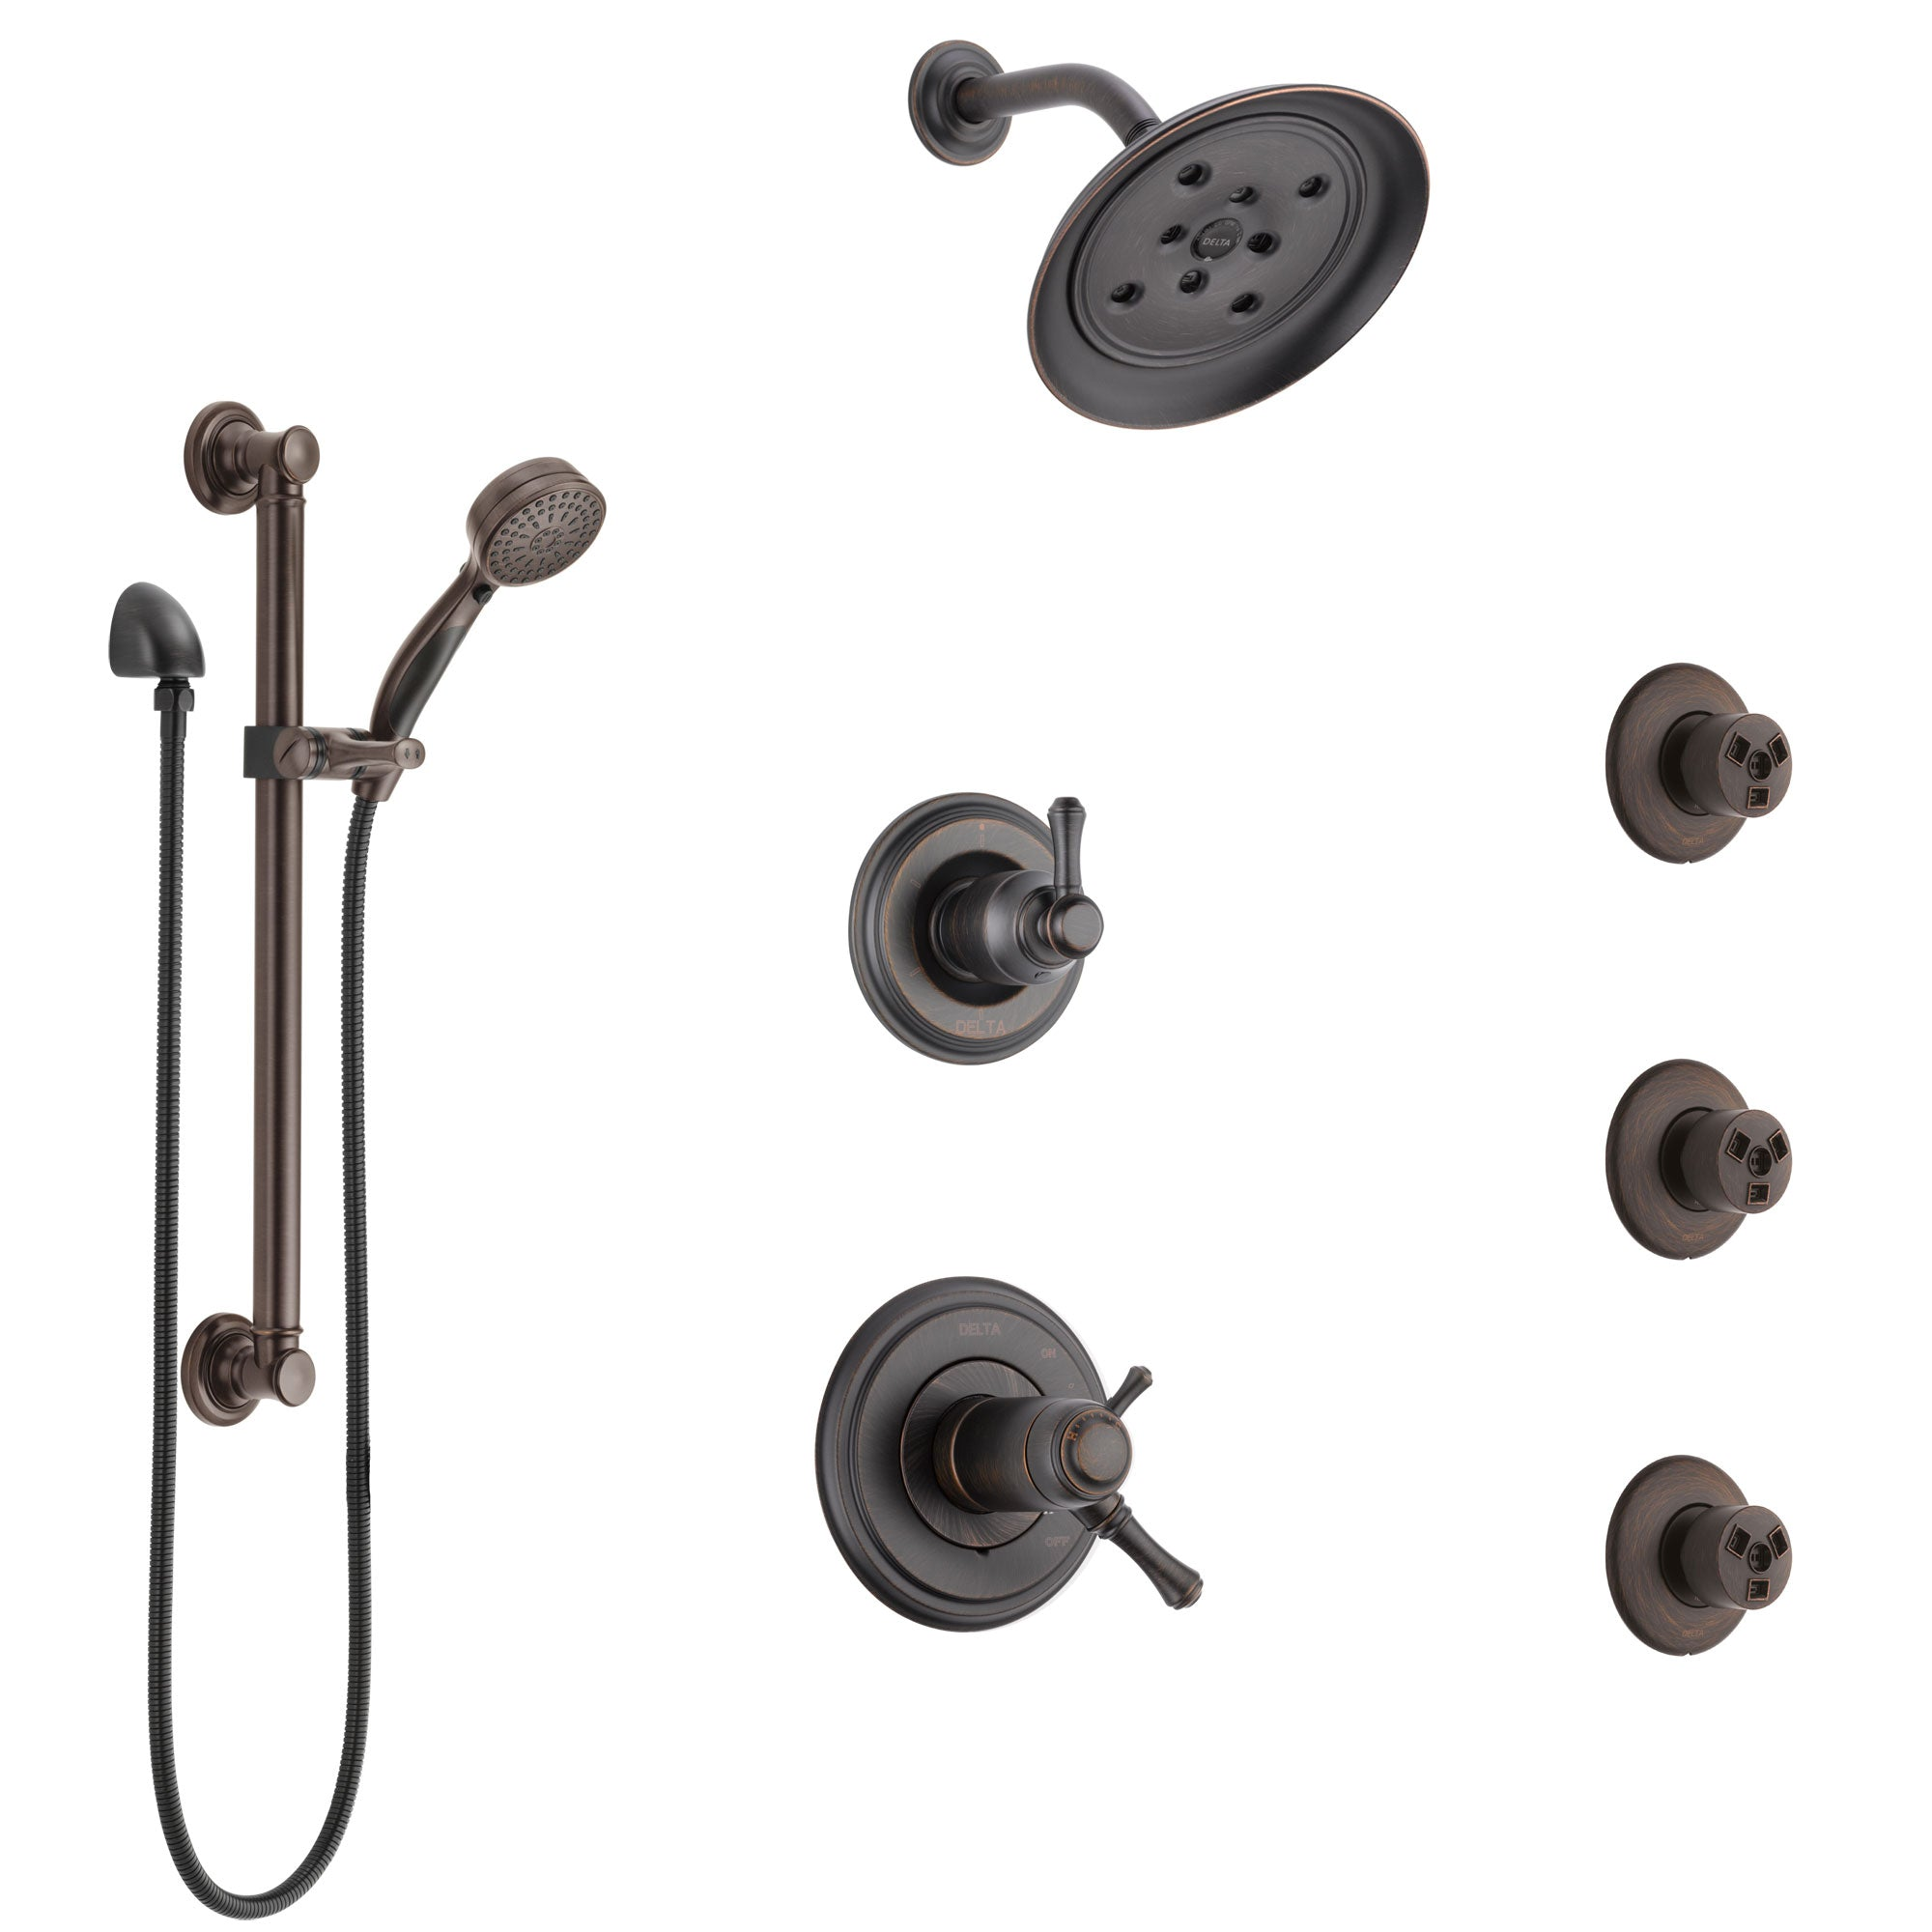 Delta Cassidy Venetian Bronze Shower System with Dual Thermostatic Control, Diverter, Showerhead, 3 Body Sprays, and Grab Bar Hand Shower SS17T971RB3